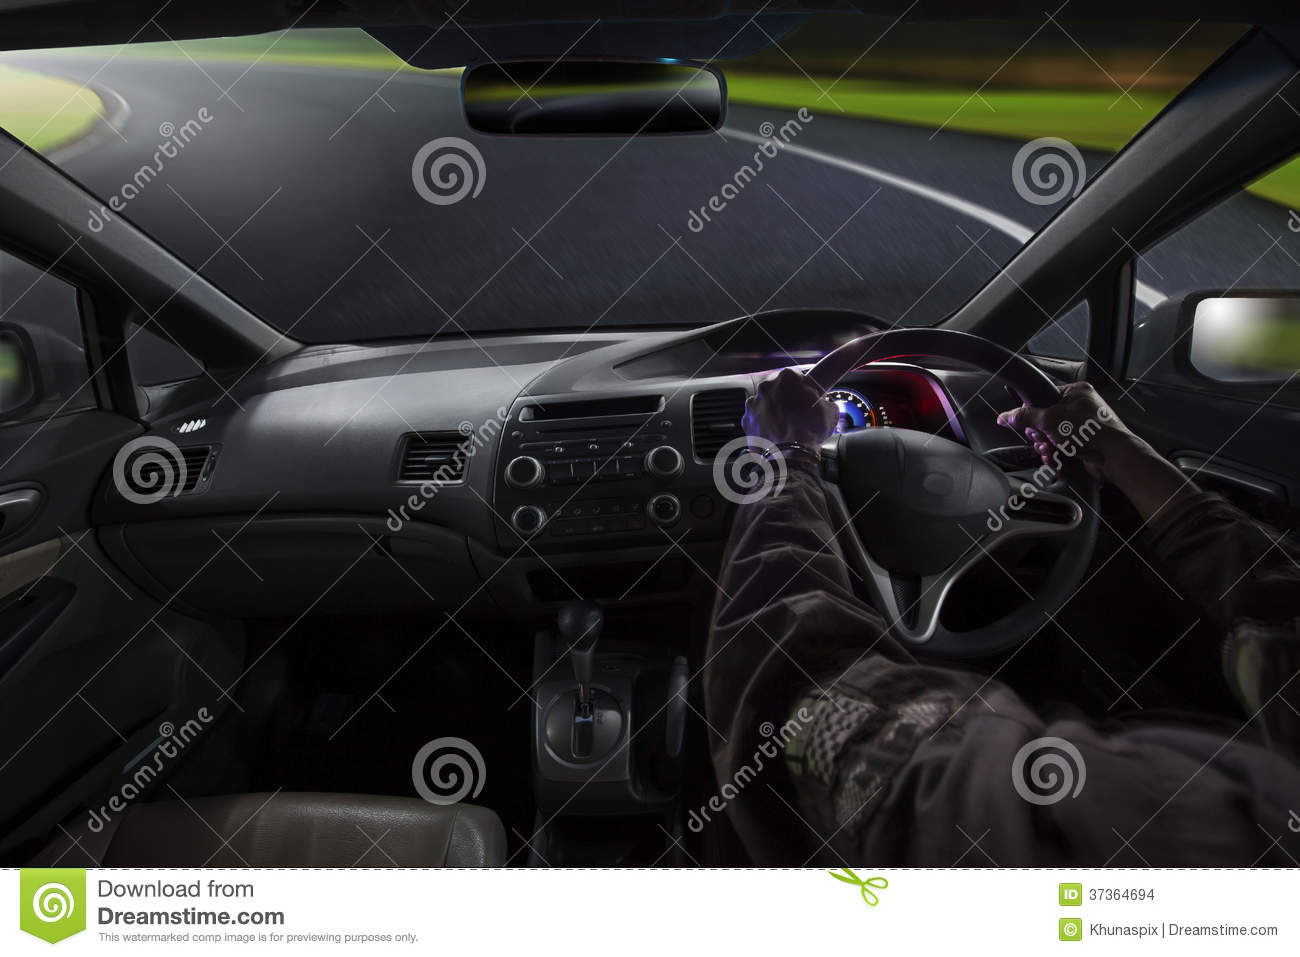 driving a car view inside gas petrol royalty free stock image 12122482. Black Bedroom Furniture Sets. Home Design Ideas